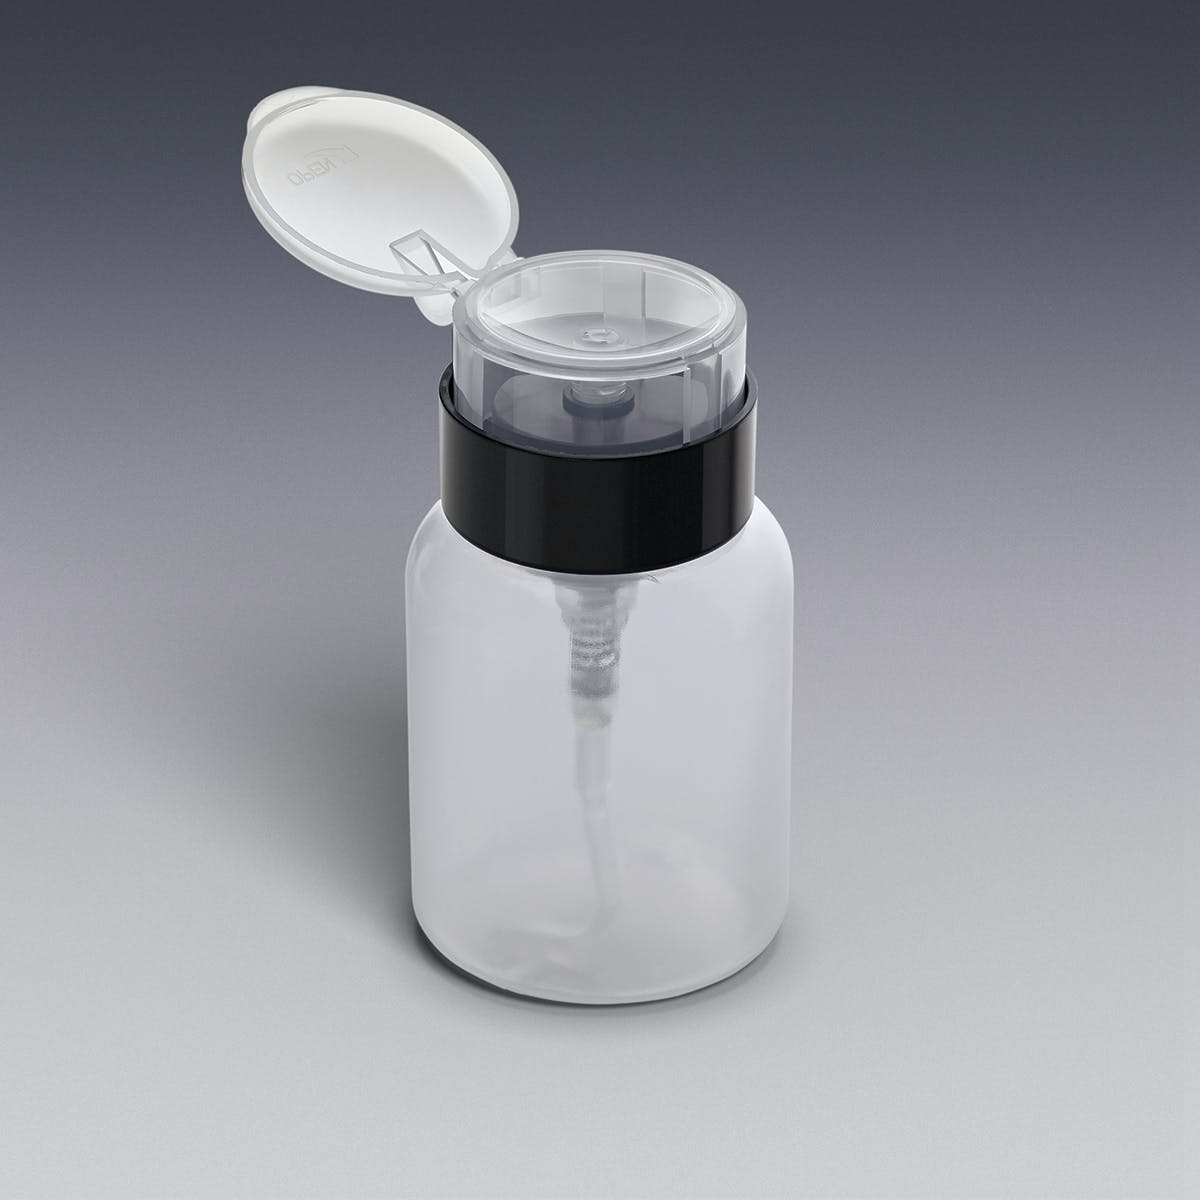 One-Touch Dispensing Bottle with Locking Flip Top Cap, Natural and Black Plastic bottle sold by Qosmedix